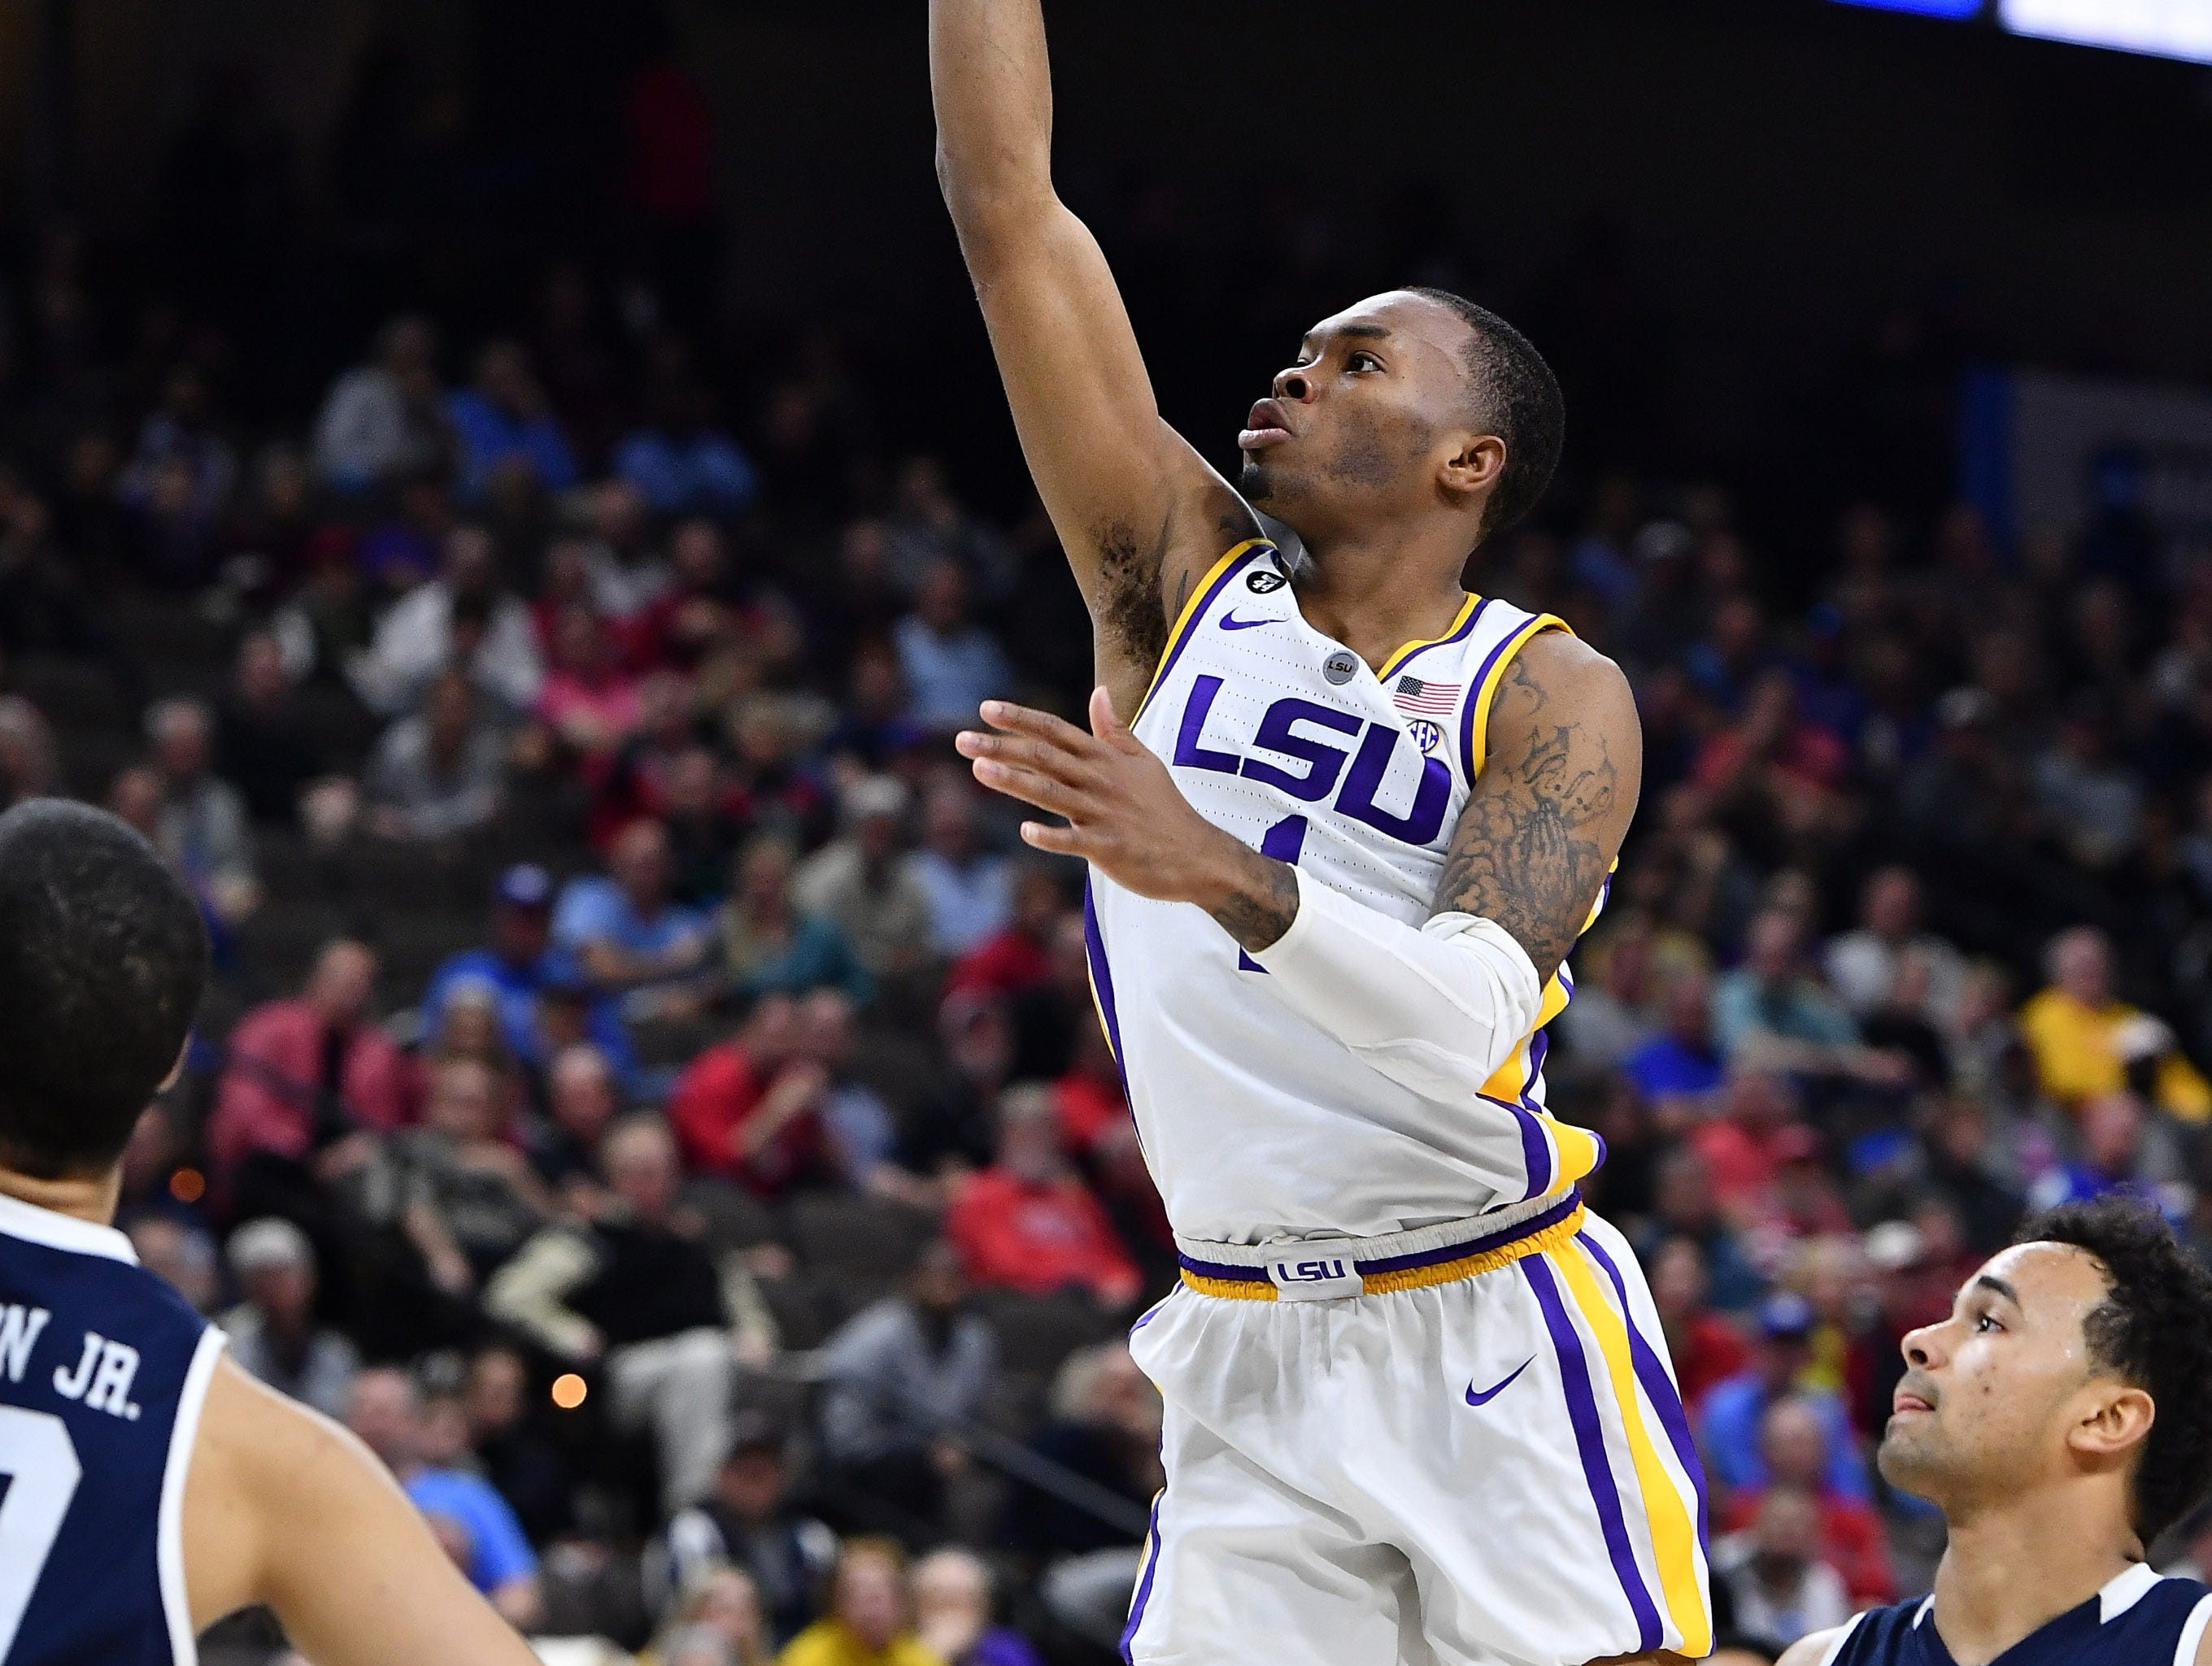 Mar 21, 2019; Jacksonville, FL, USA; LSU Tigers guard Javonte Smart (1) shoots against Yale Bulldogs guard Azar Swain (5) during the second half in the first round of the 2019 NCAA Tournament at Jacksonville Veterans Memorial Arena. Mandatory Credit: John David Mercer-USA TODAY Sports